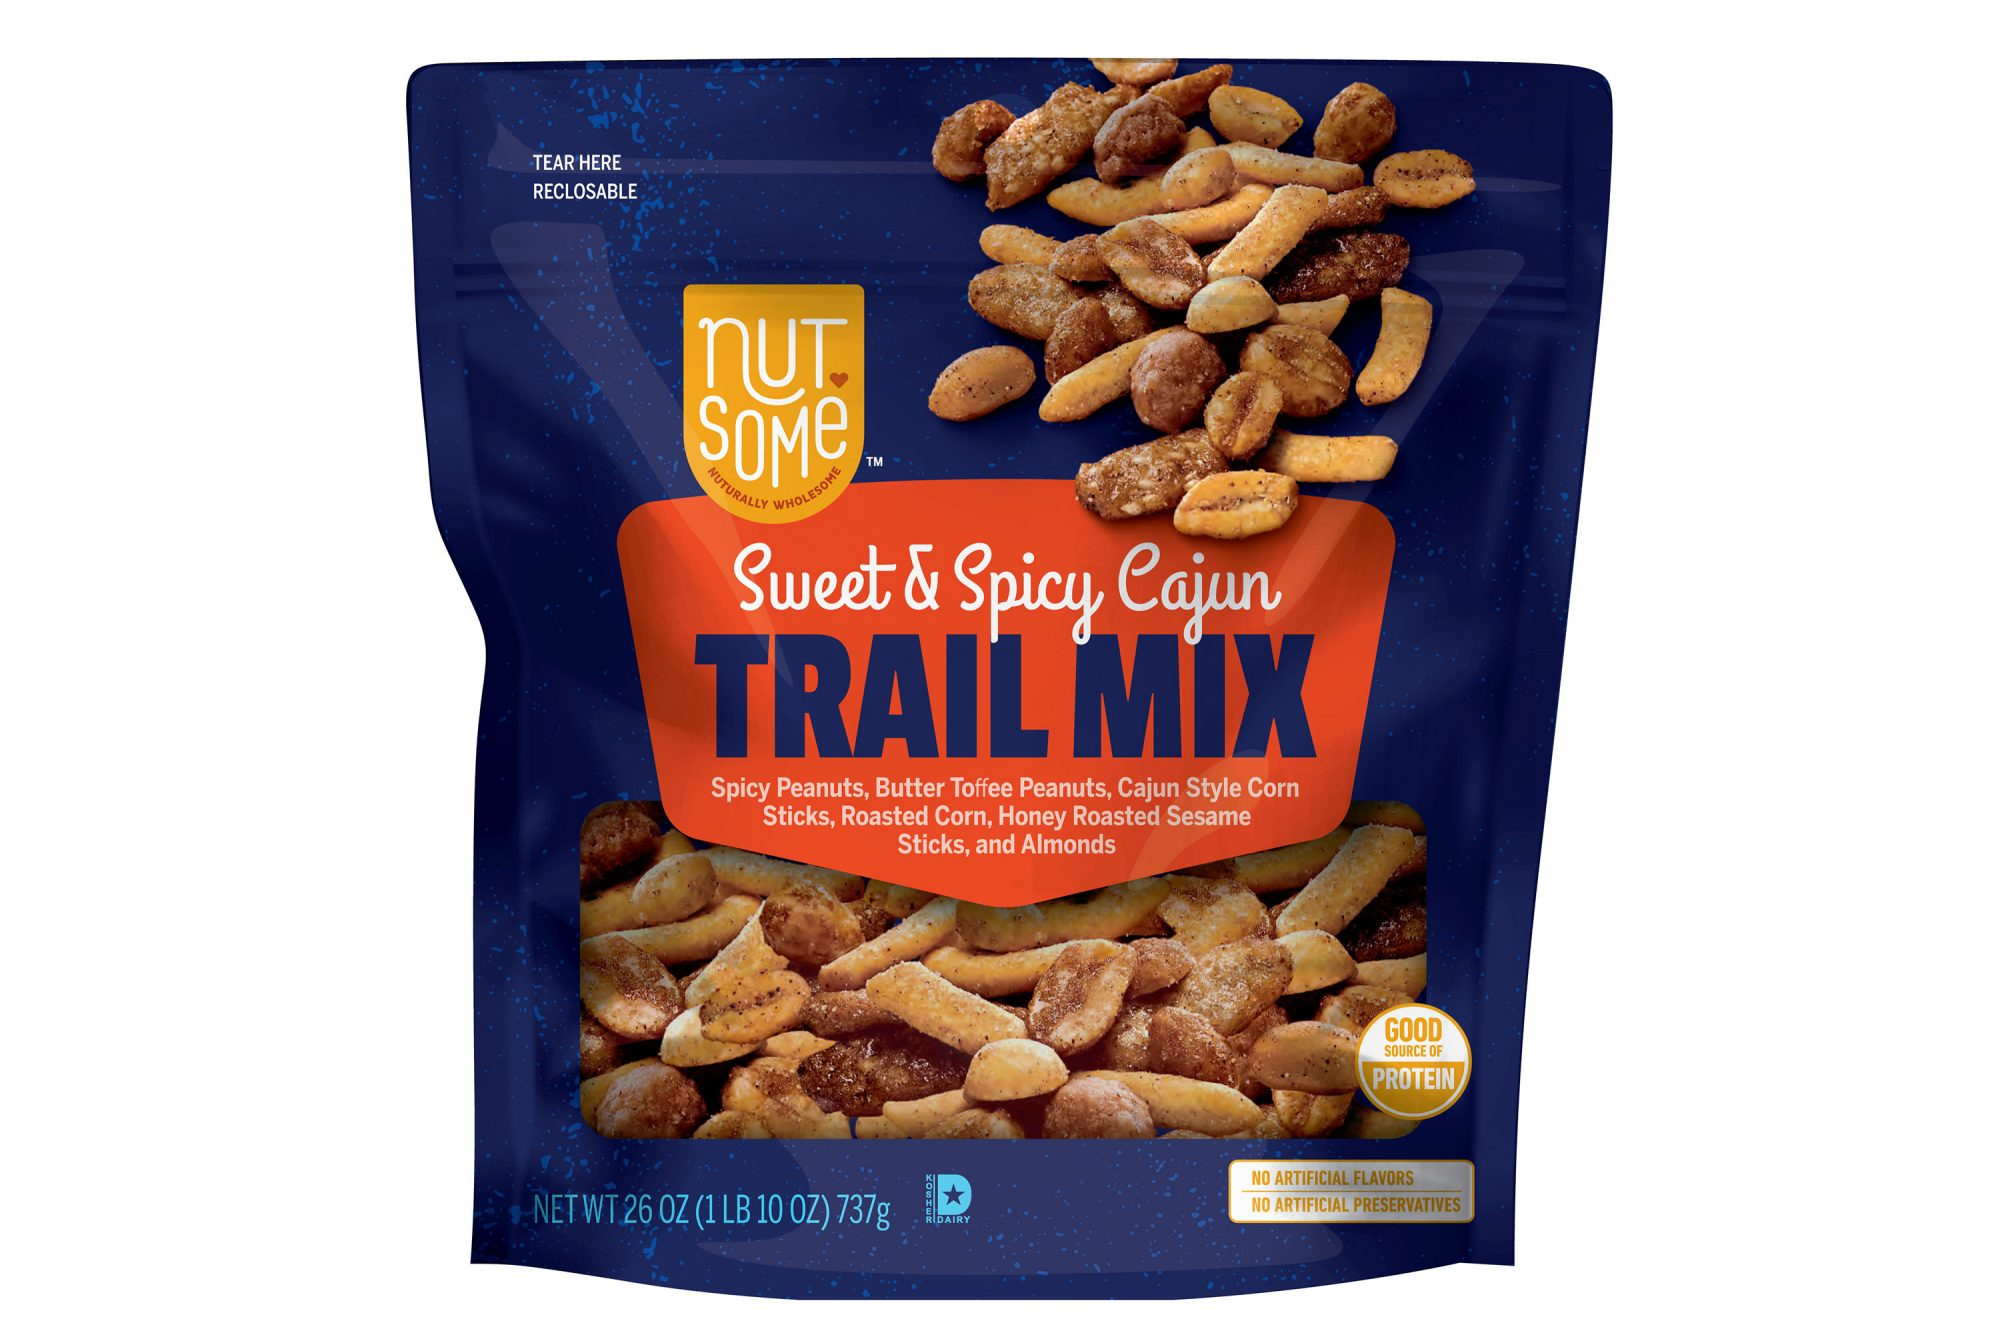 Nutsome-Sweet-Spicy Cajun Trail Mix